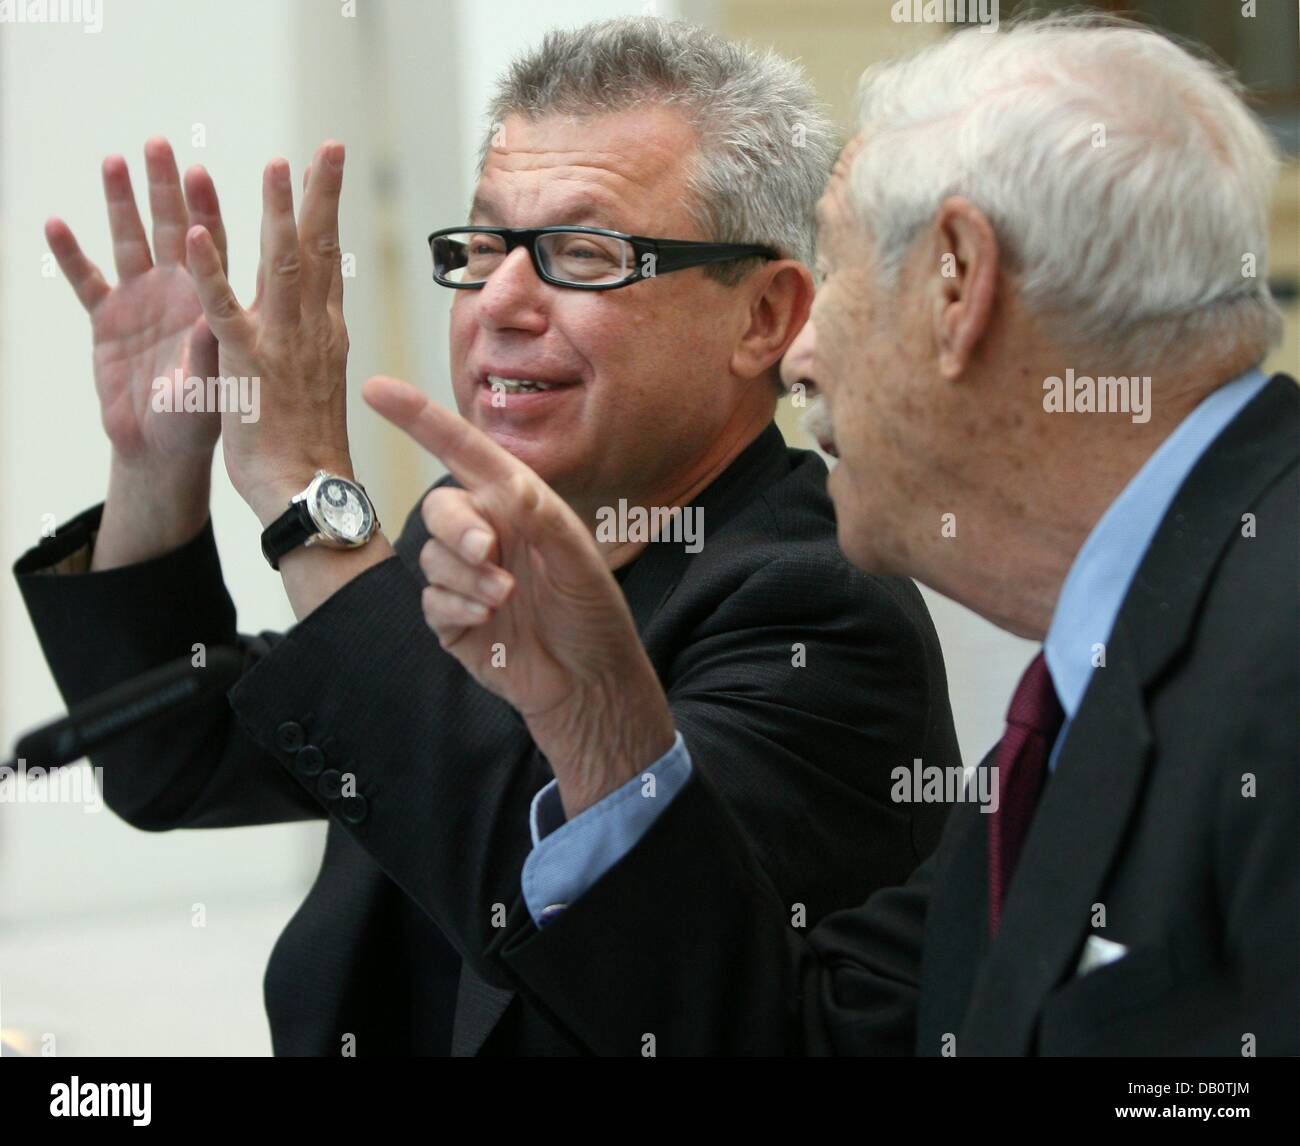 Polish-born US star architect Daniel Libeskind (L) pictured with Michael Bluementhal (R), director of the Jewish - Stock Image